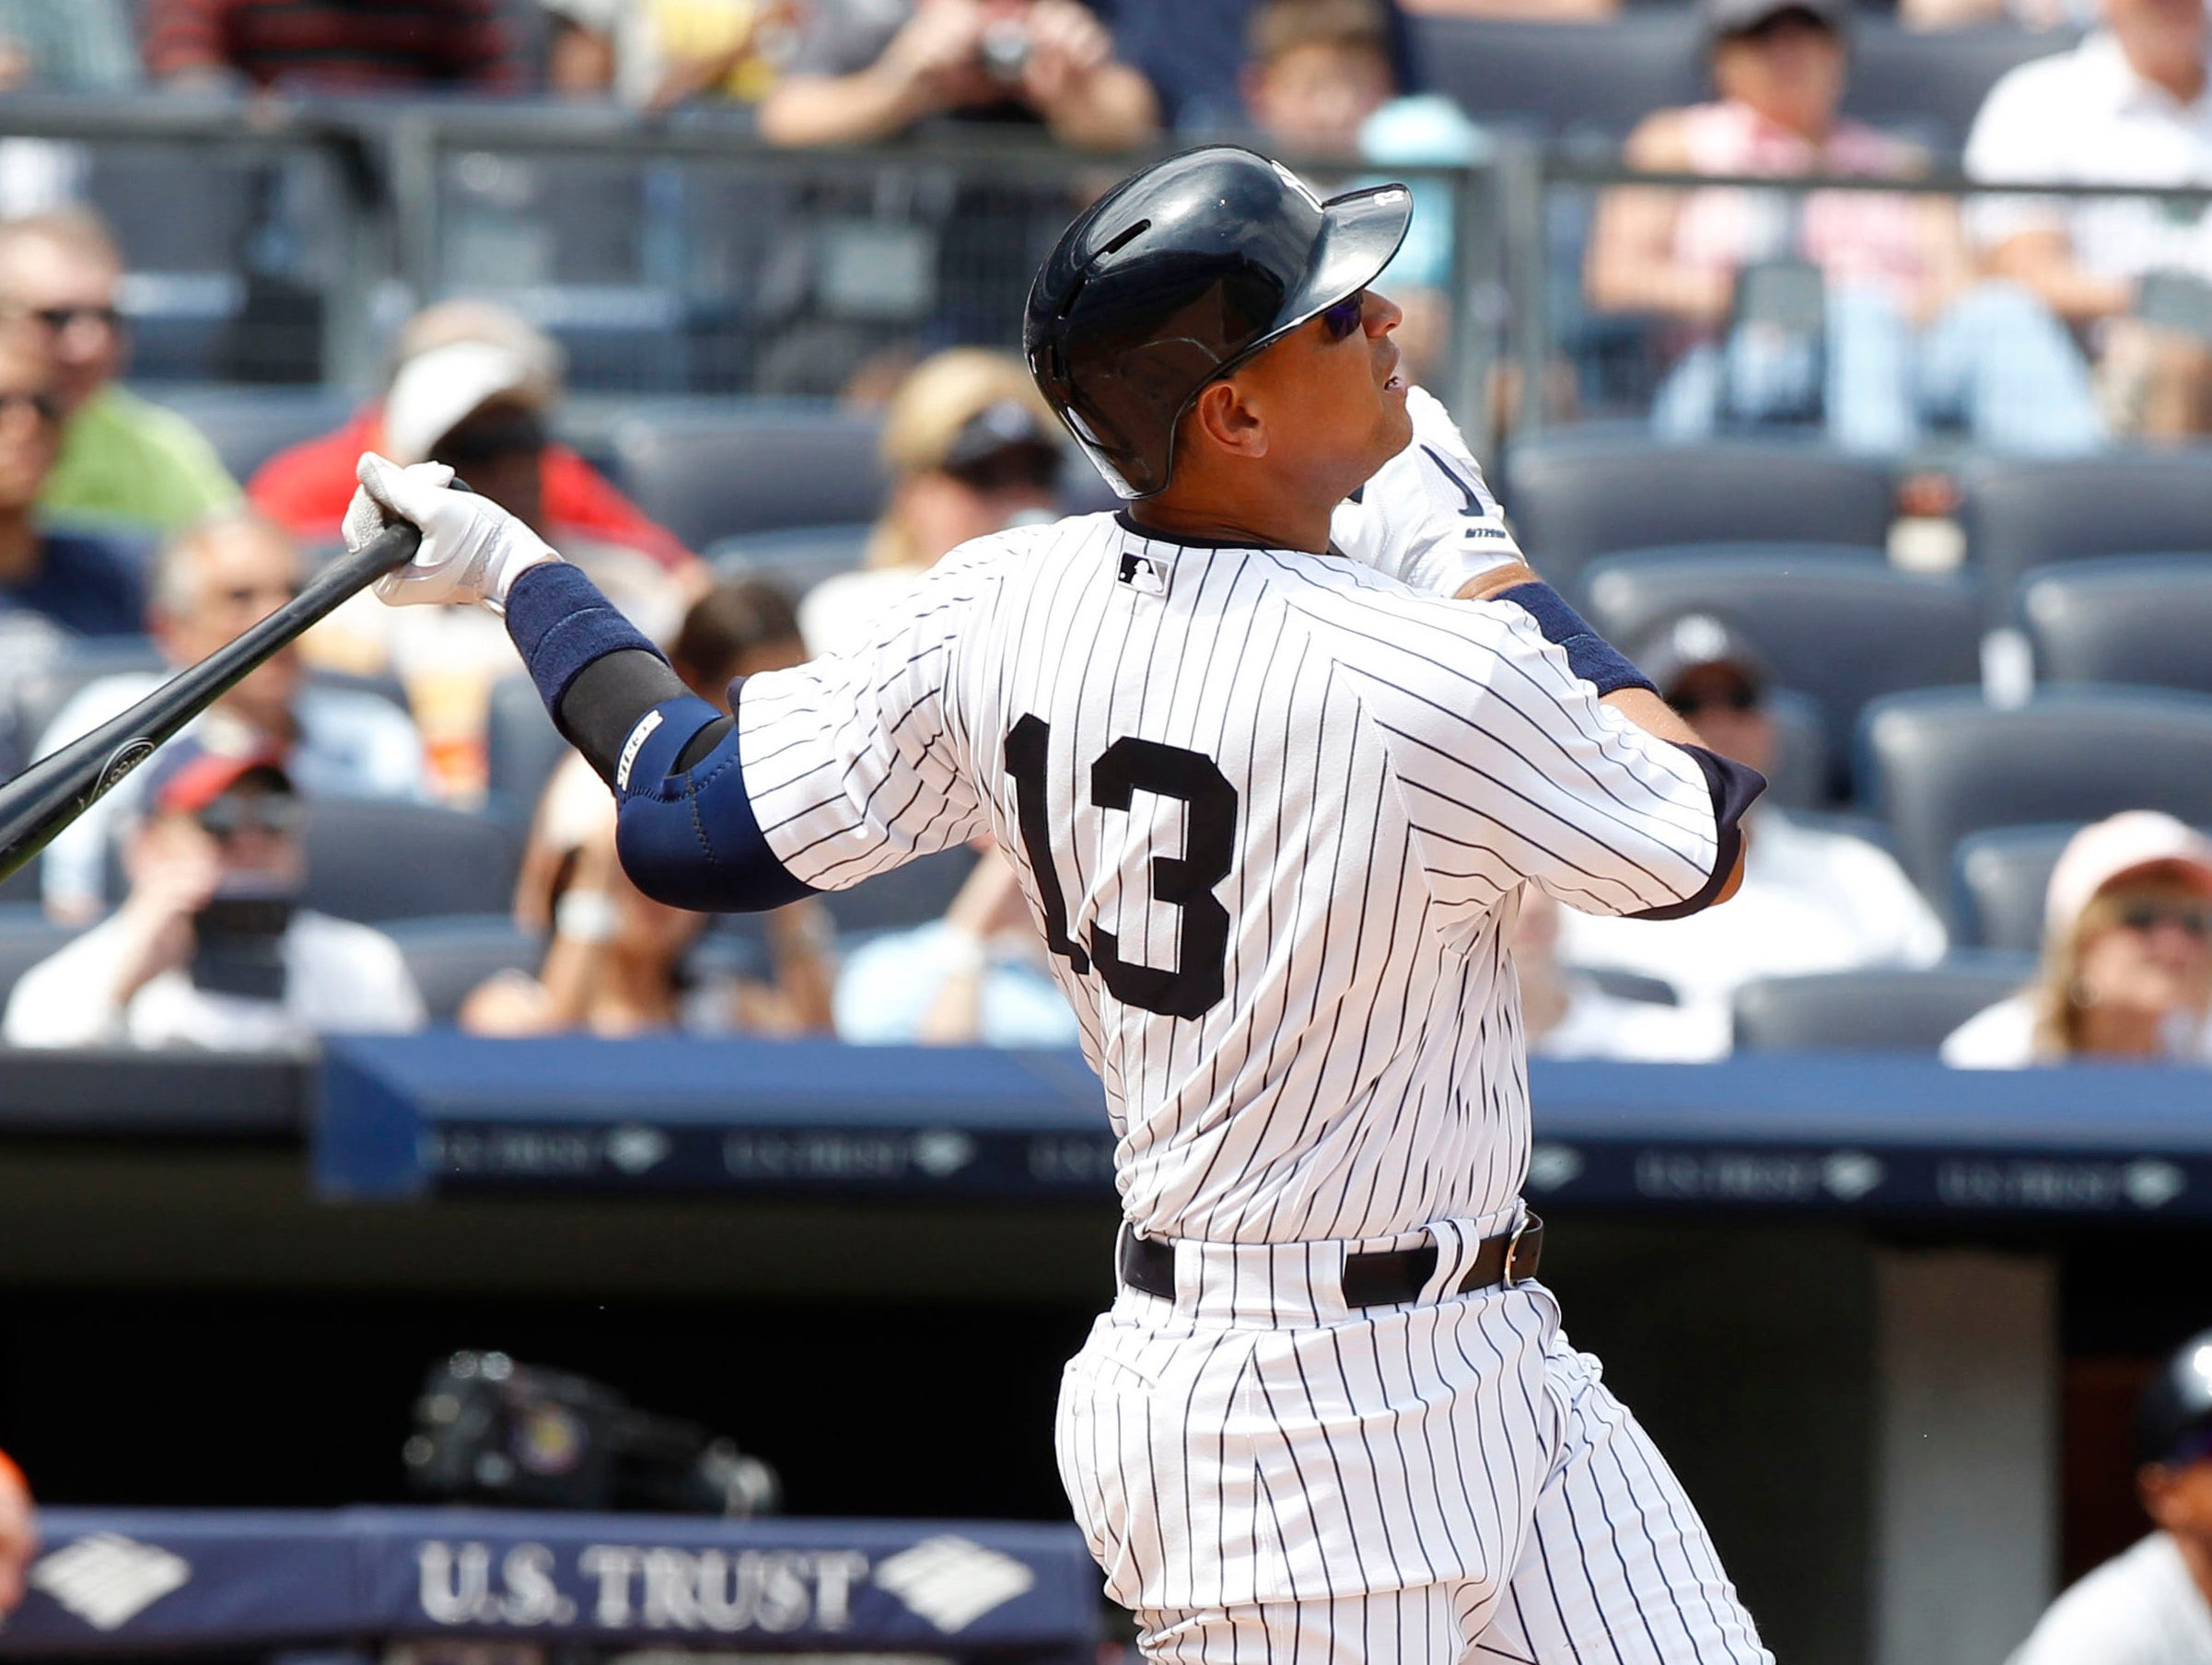 Alex Rodriguez hits his 648th career home run, his first of the season. The RBI moves him past Stan Musial for fifth on the all-time career RBI list with 1,951.